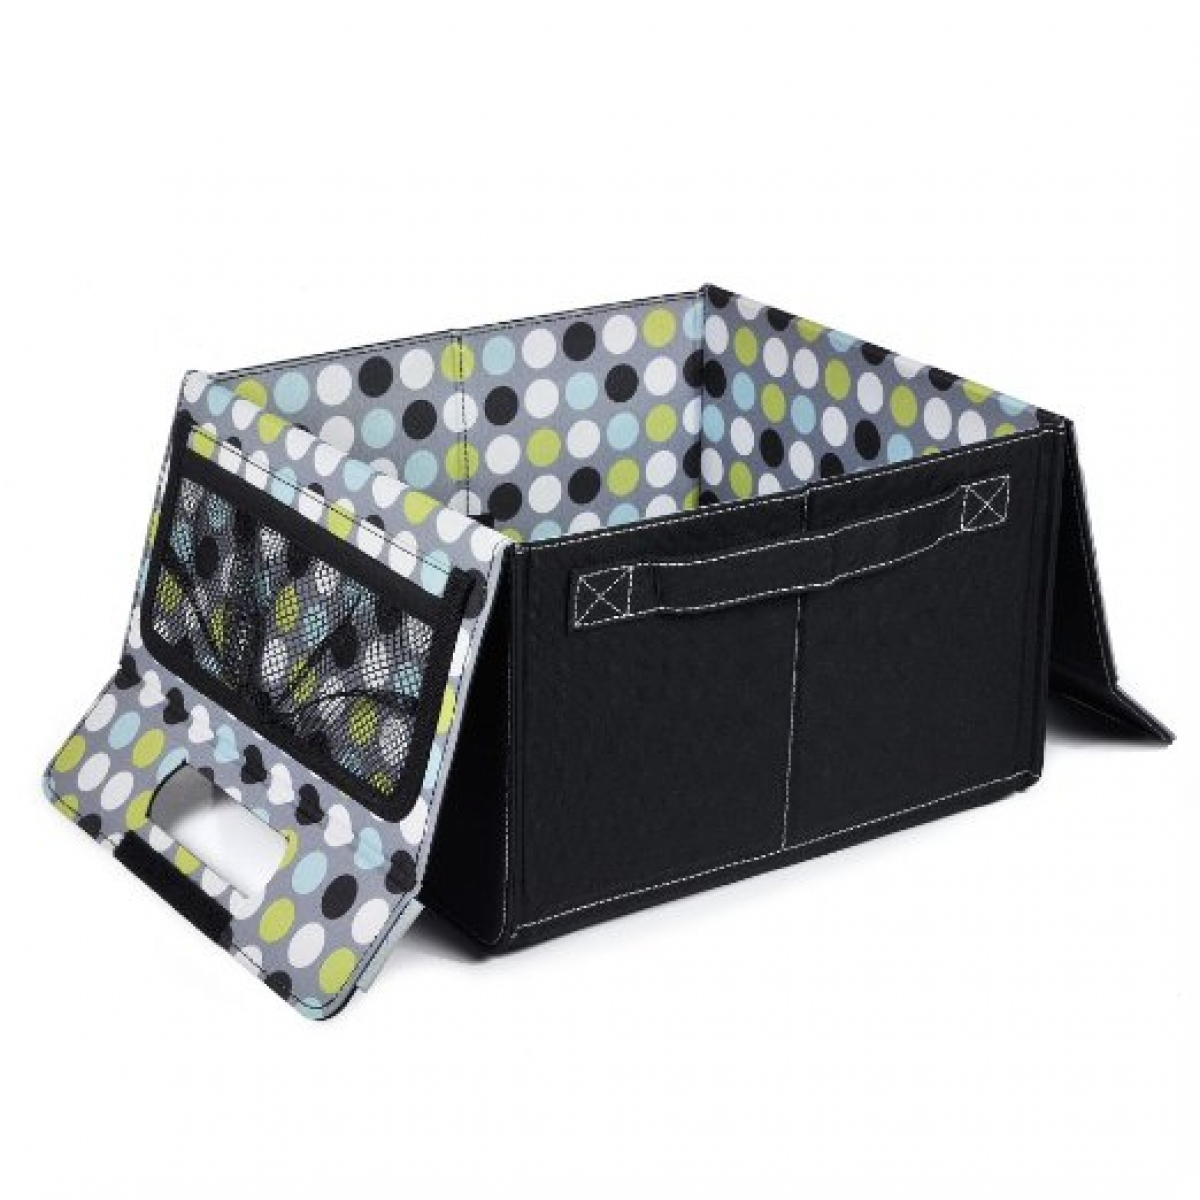 (Y7537) The First Years, Diaper Storage Box